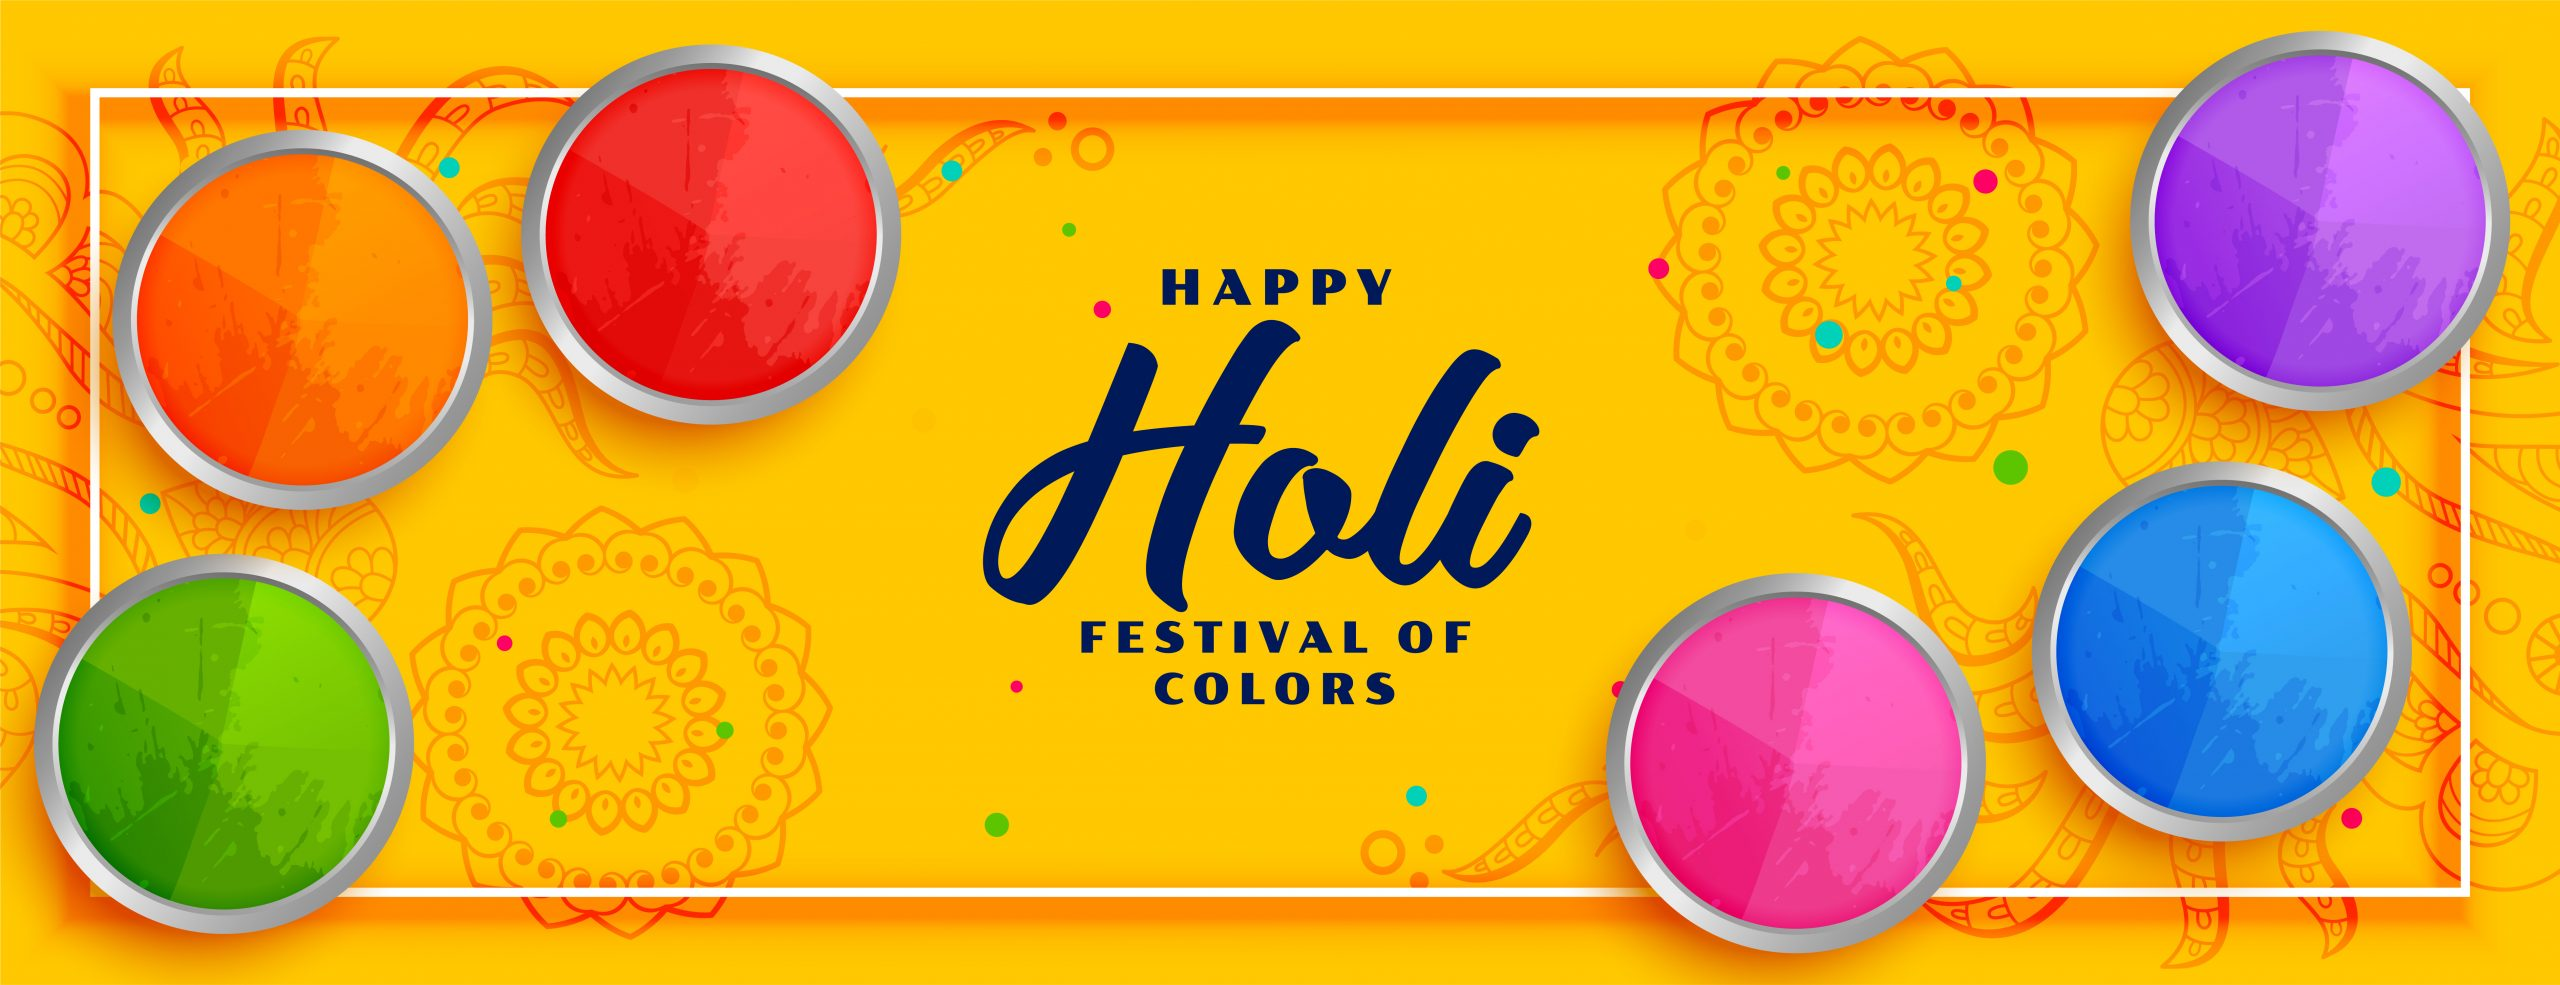 Free Happy Holi Project For Grass Valley EDIUS